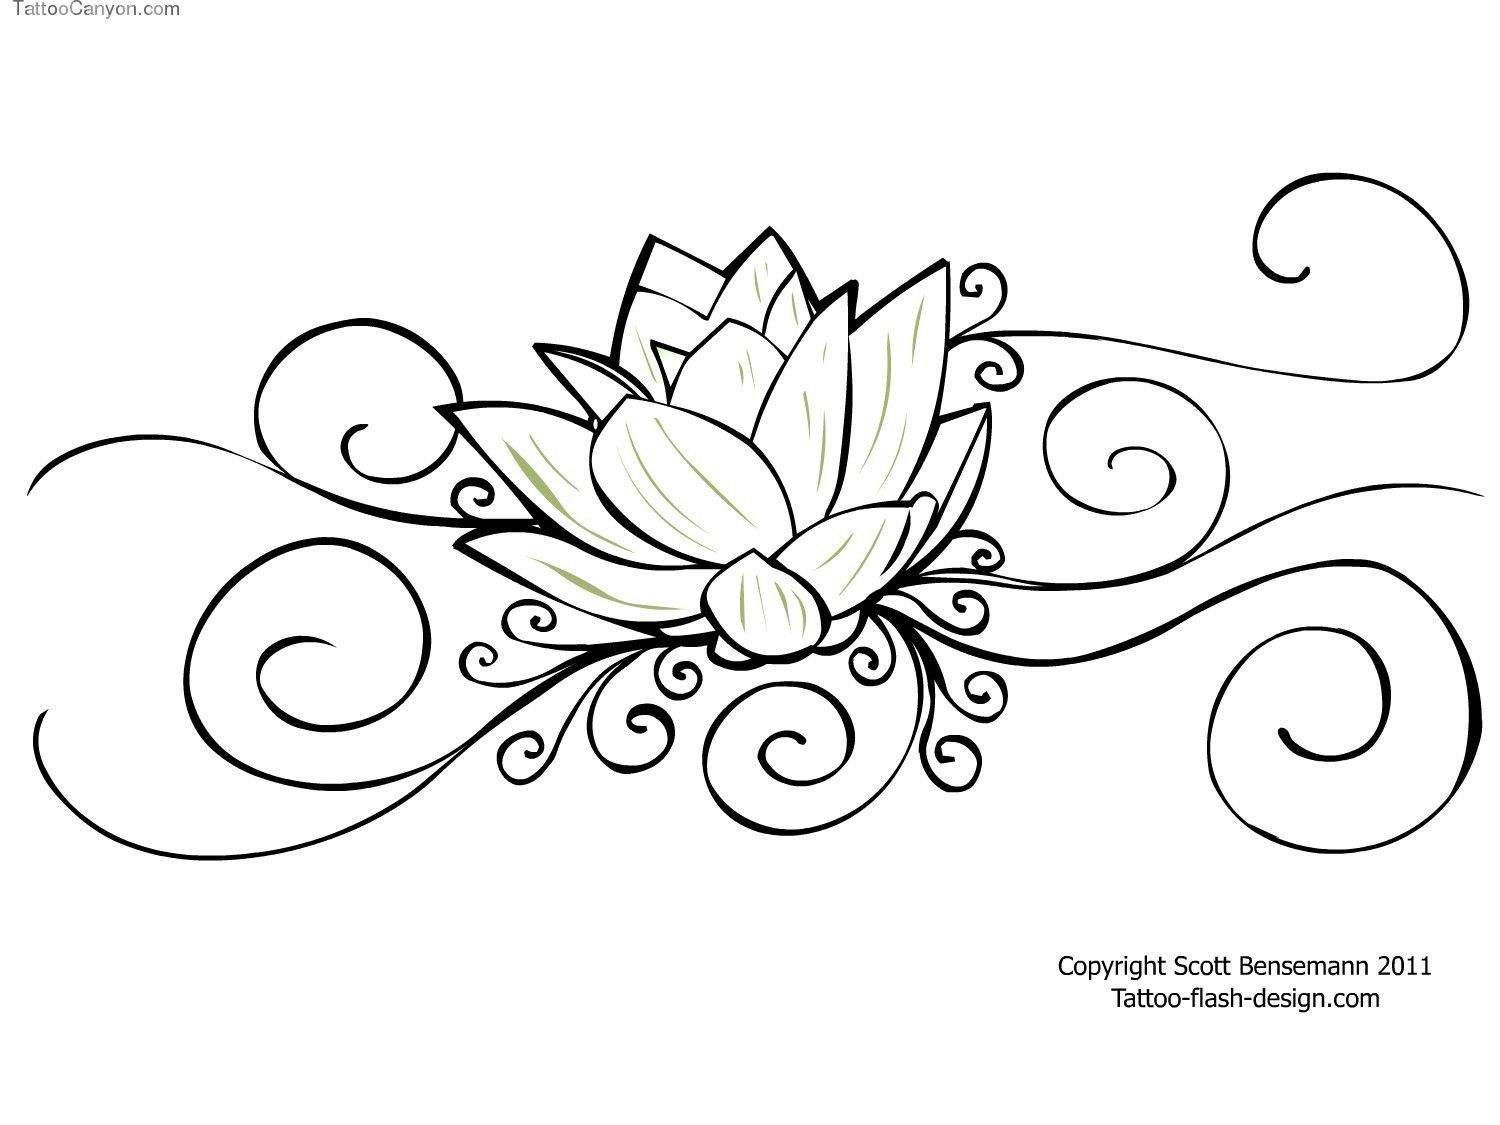 Small lotus flower tattoo designs tatouages surs pinterest small lotus flower tattoo designs izmirmasajfo Images